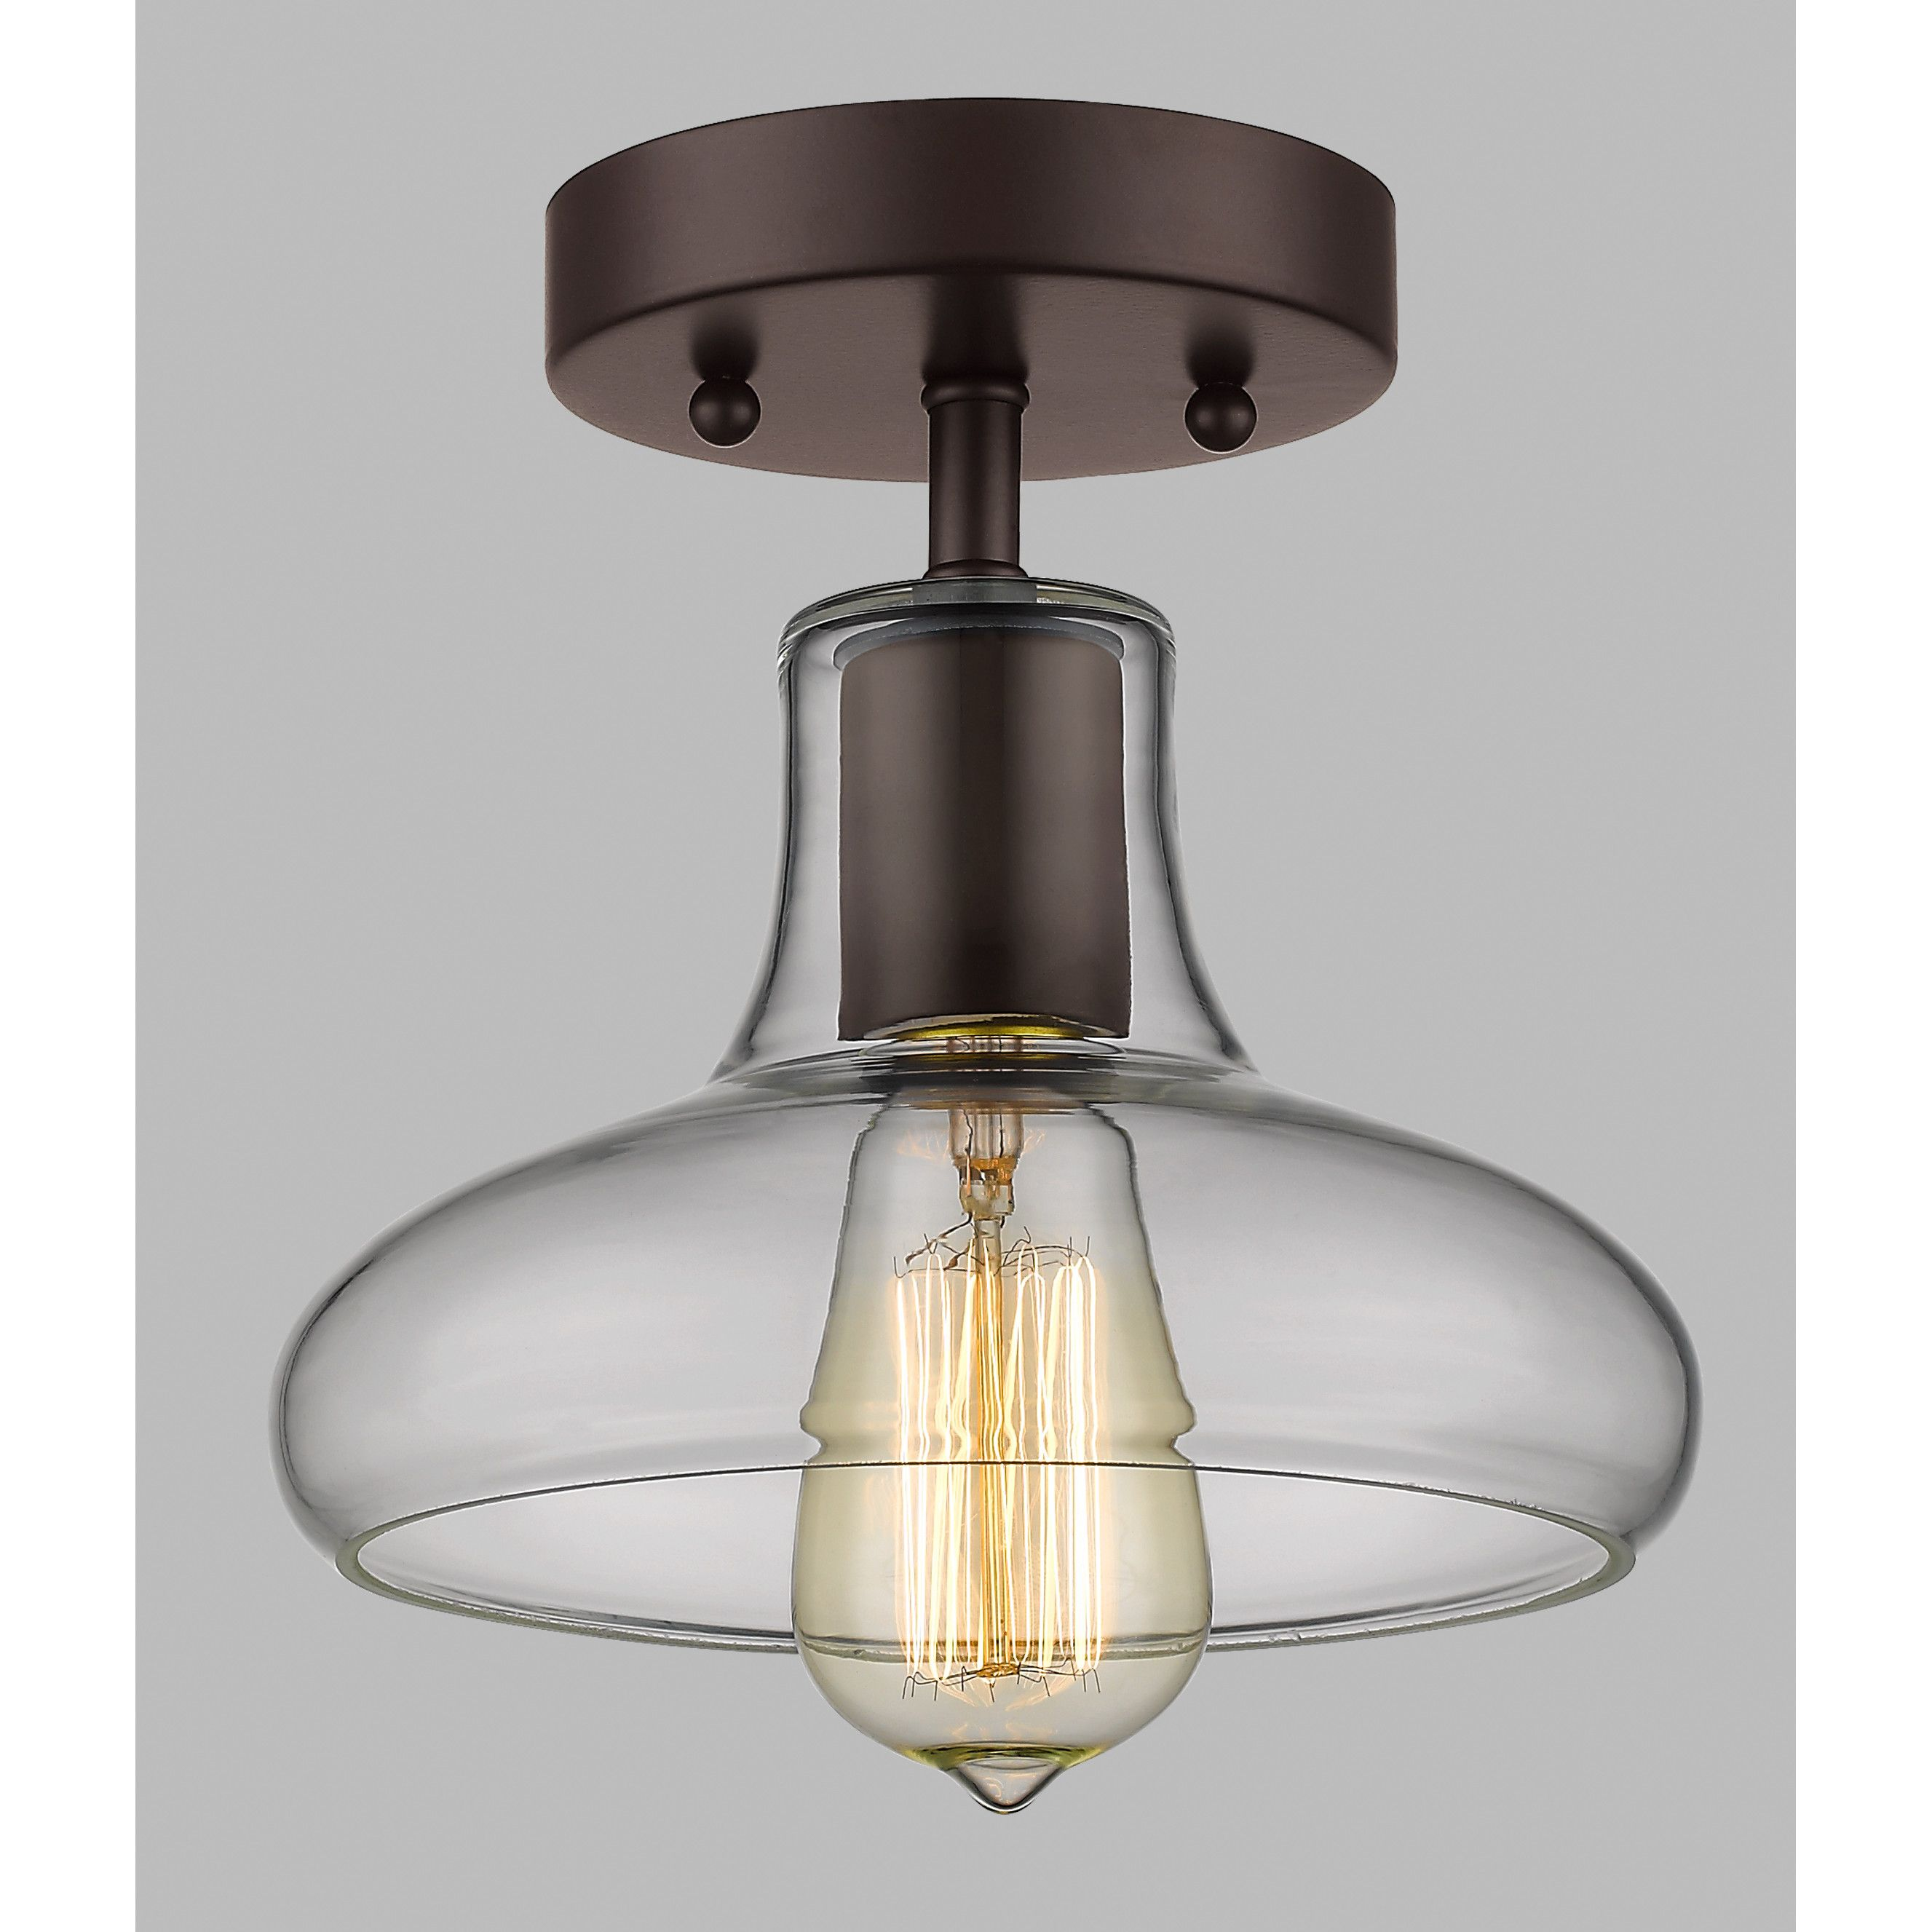 Chloe Lighting Ironclad 1 Light Semi Flush Mount | * HEIMBOLD ...